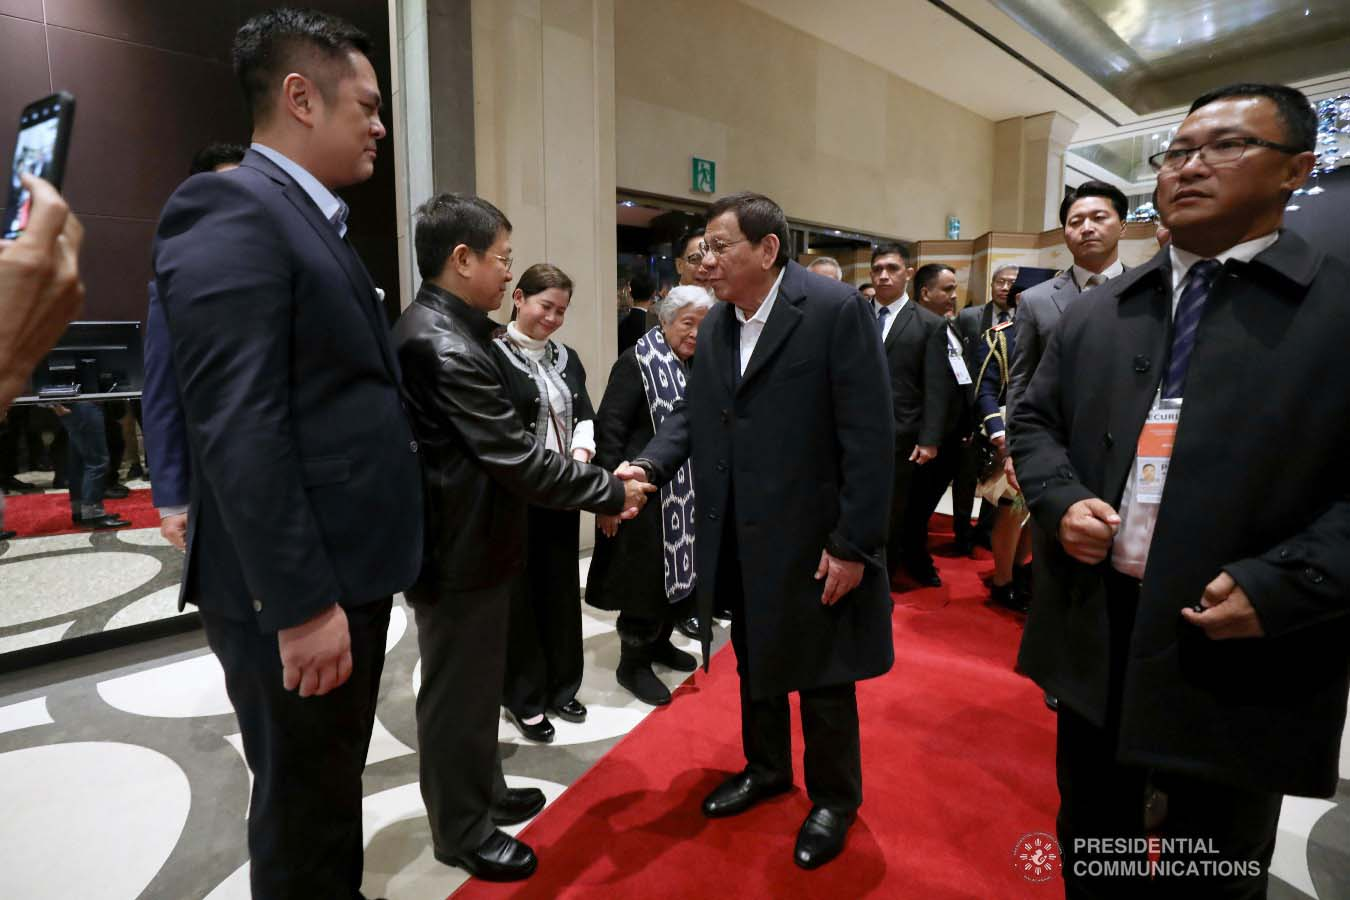 President Rodrigo Roa Duterte is welcomed by Interior and Local Government Secretary Eduardo Año and other members of the Philippine delegation upon his arrival at a hotel in Busan, Republic of Korea on November 25, 2019. ROBINSON NIÑAL JR./PRESIDENTIAL PHOTO